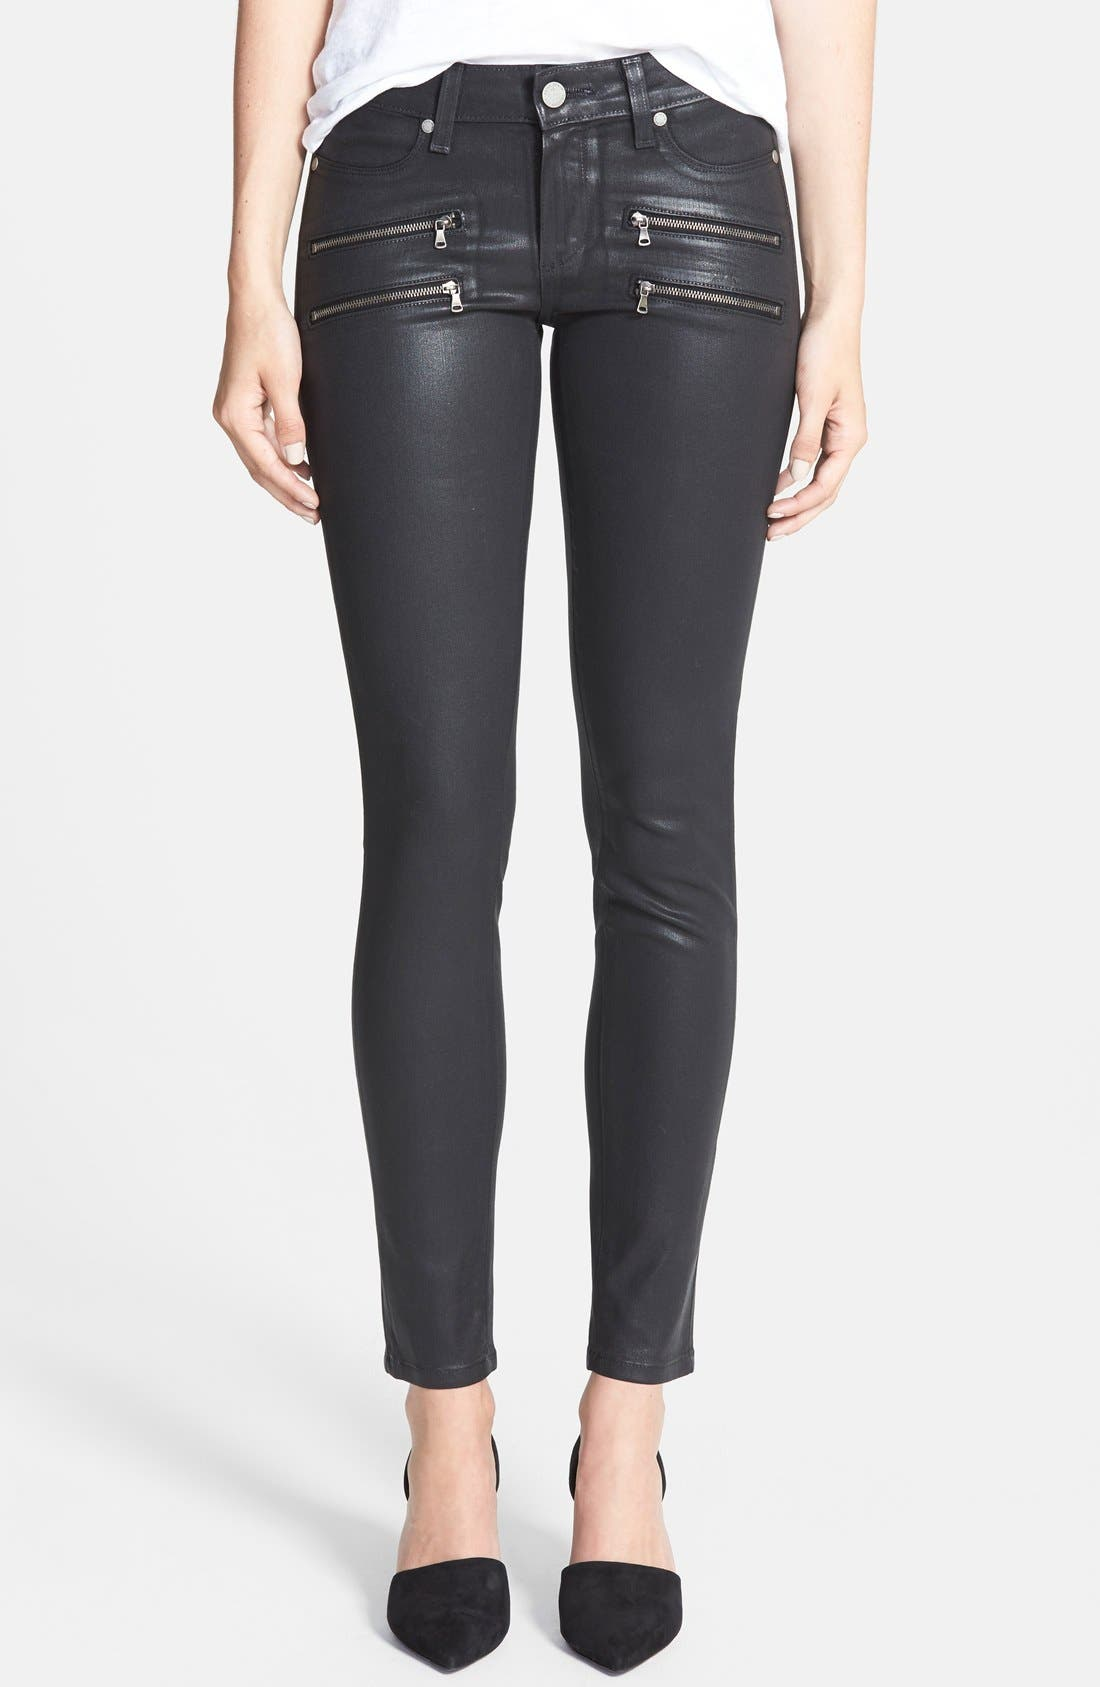 'Edgemont' Coated Ultra Skinny Jeans,                         Main,                         color, 001